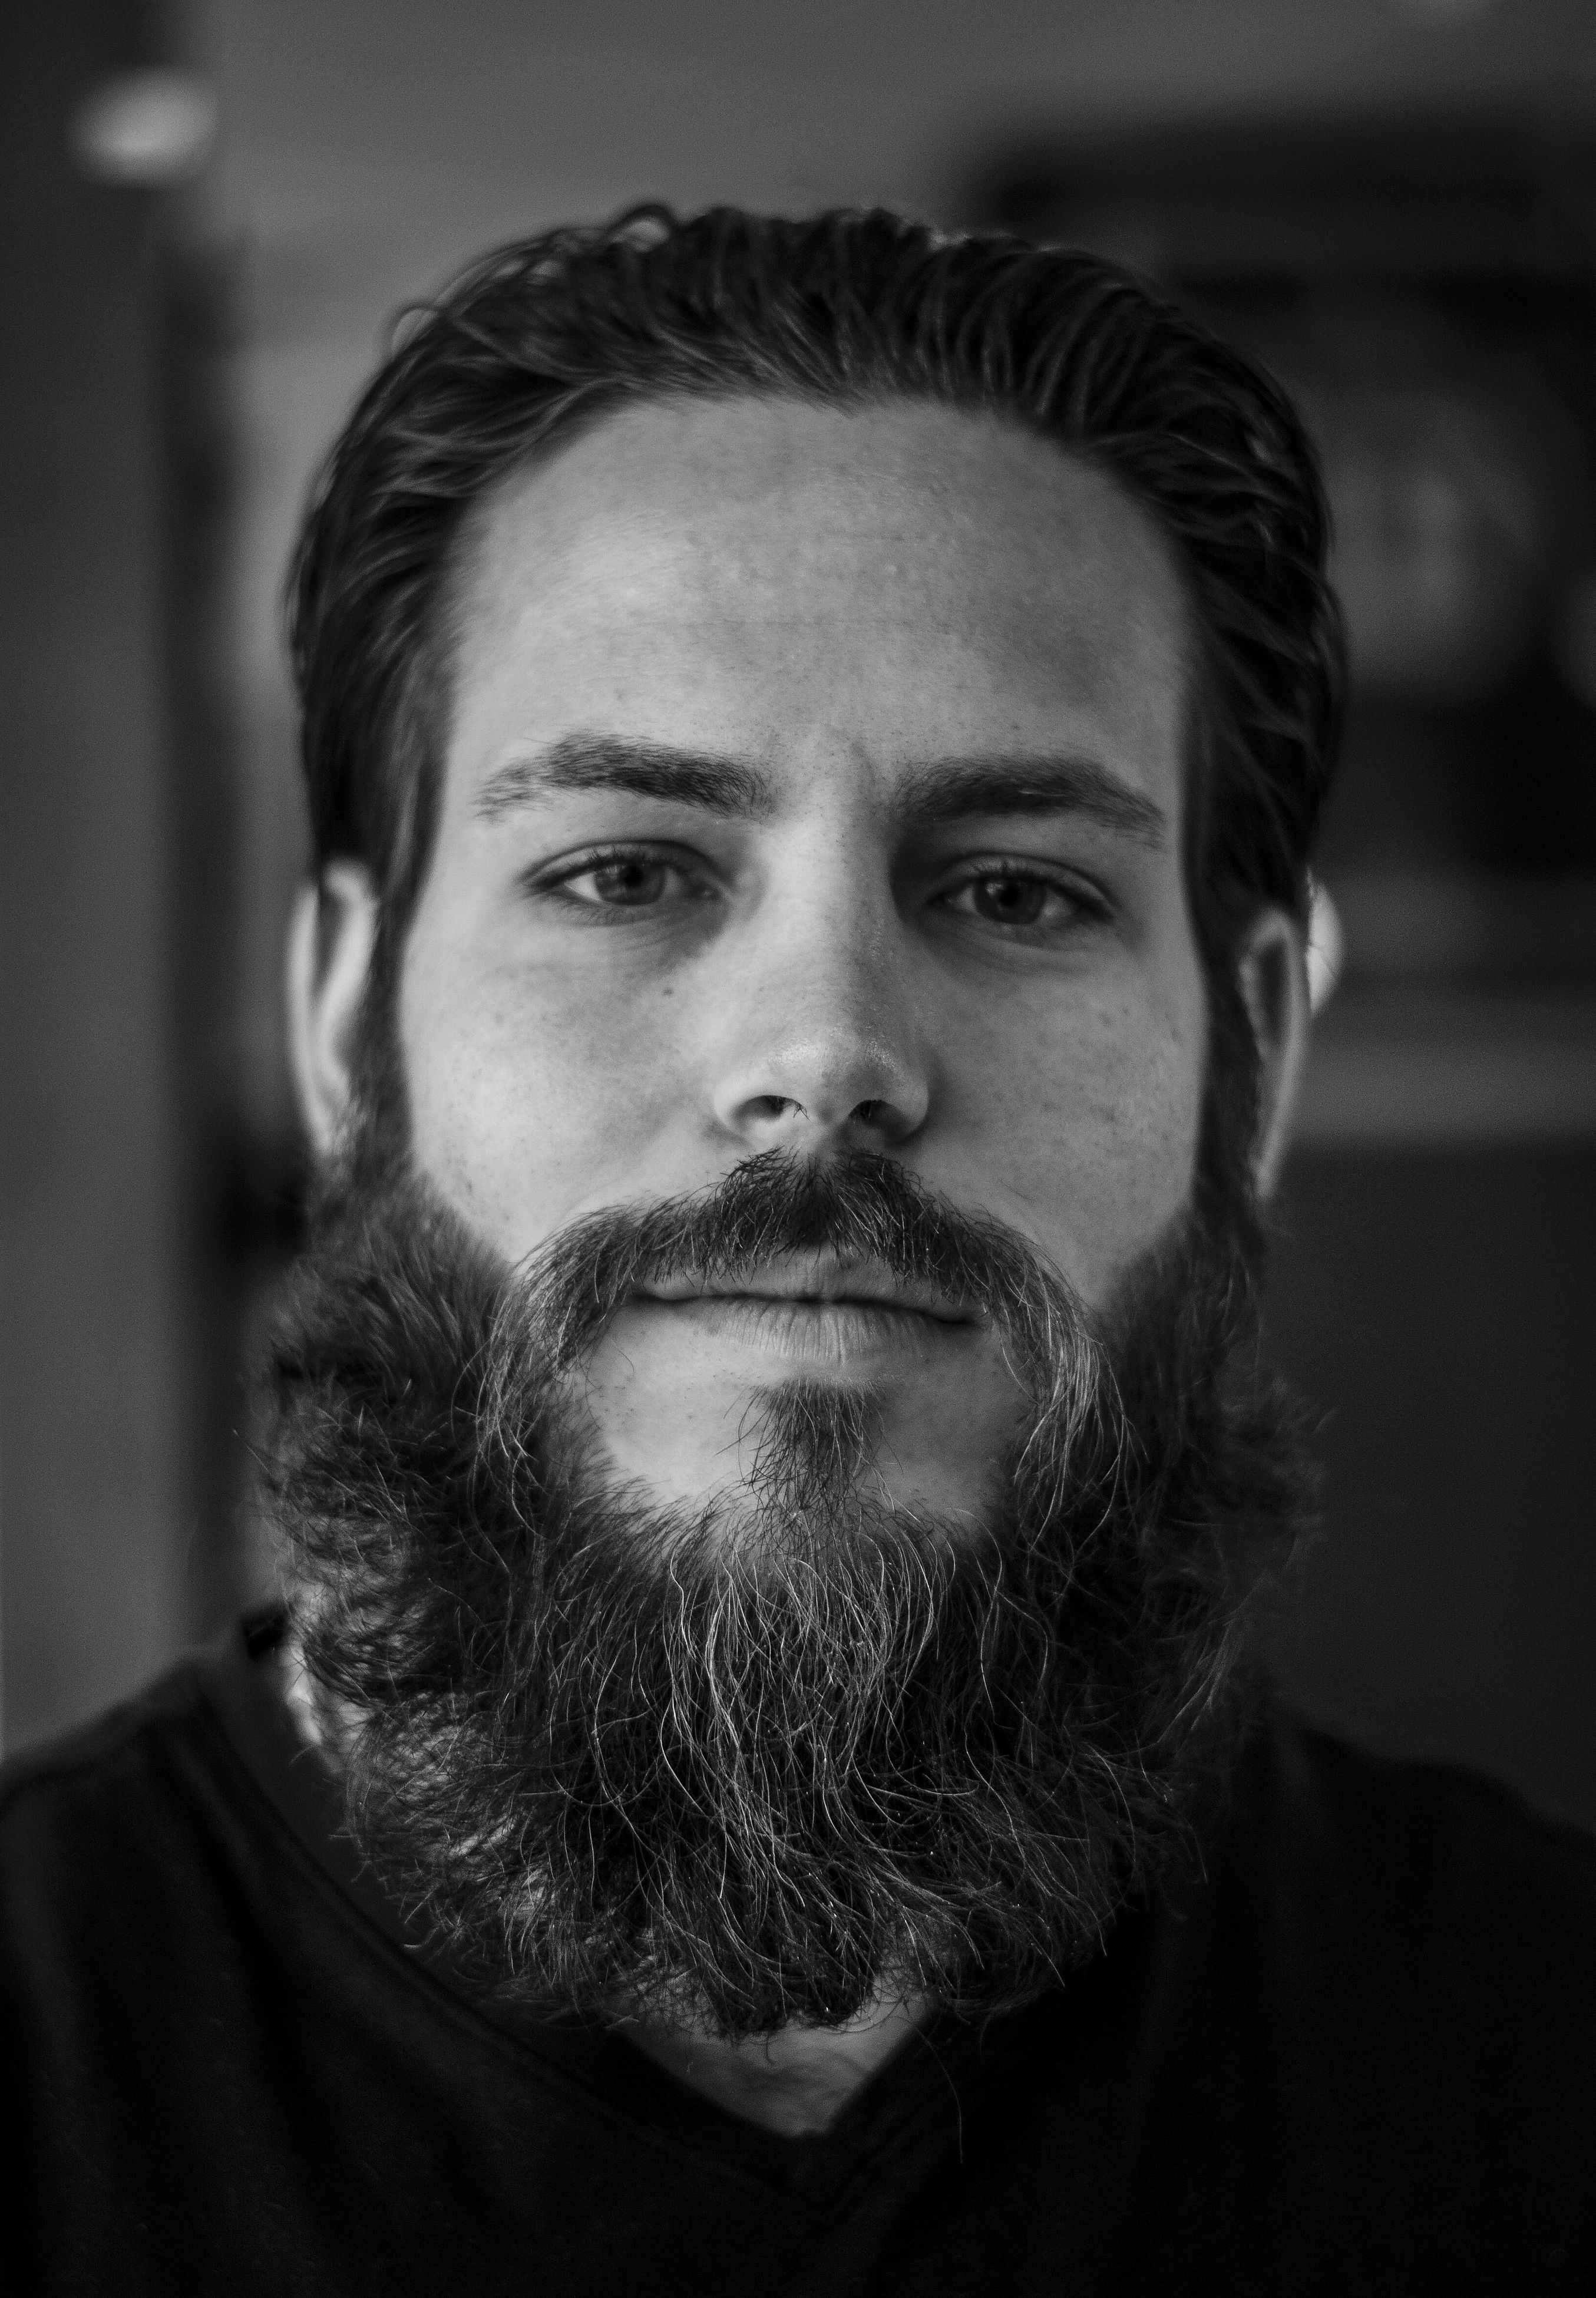 indoors, lifestyles, headshot, portrait, looking at camera, leisure activity, young adult, person, front view, young men, close-up, casual clothing, beard, home interior, focus on foreground, men, human face, mid adult